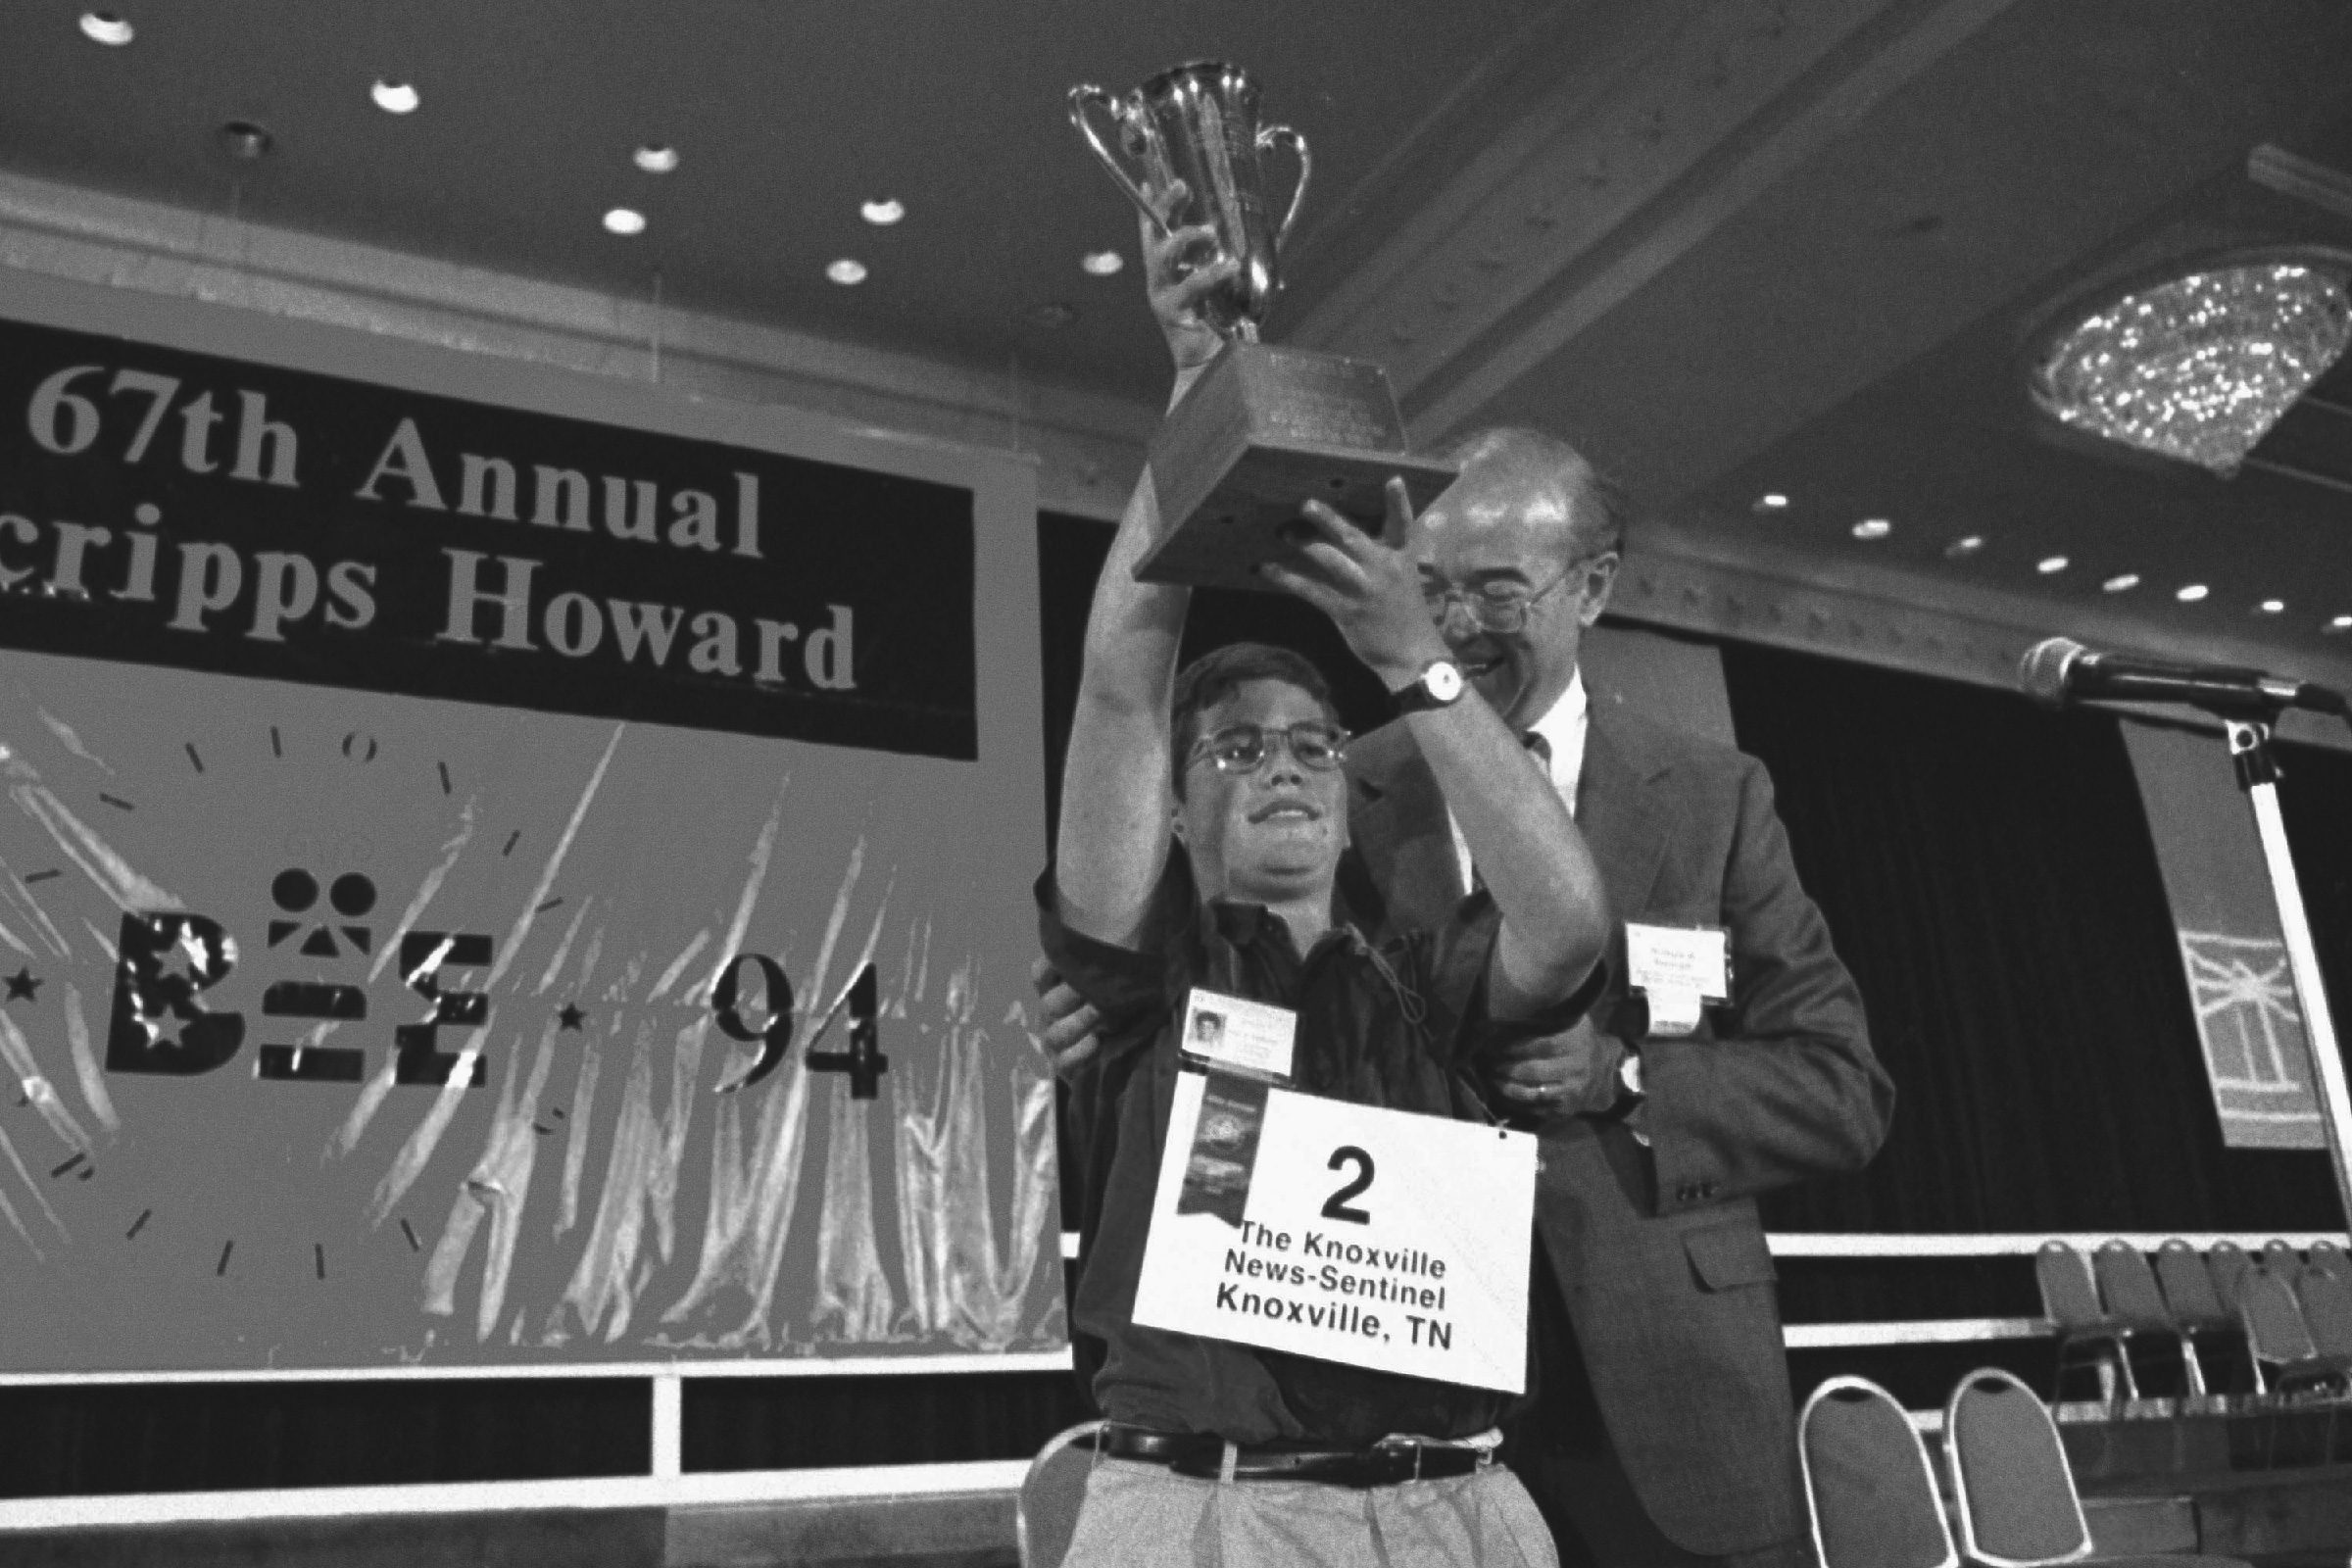 Ned G. Andrews, William Burleigh Ned G. Andrews, 13, a seventh-grader from Knoxville, Tenn., is congratulated by William Burleigh, chief operating officer of Scripps Howard Inc., after winning the National Spelling Bee in Washington, D.C